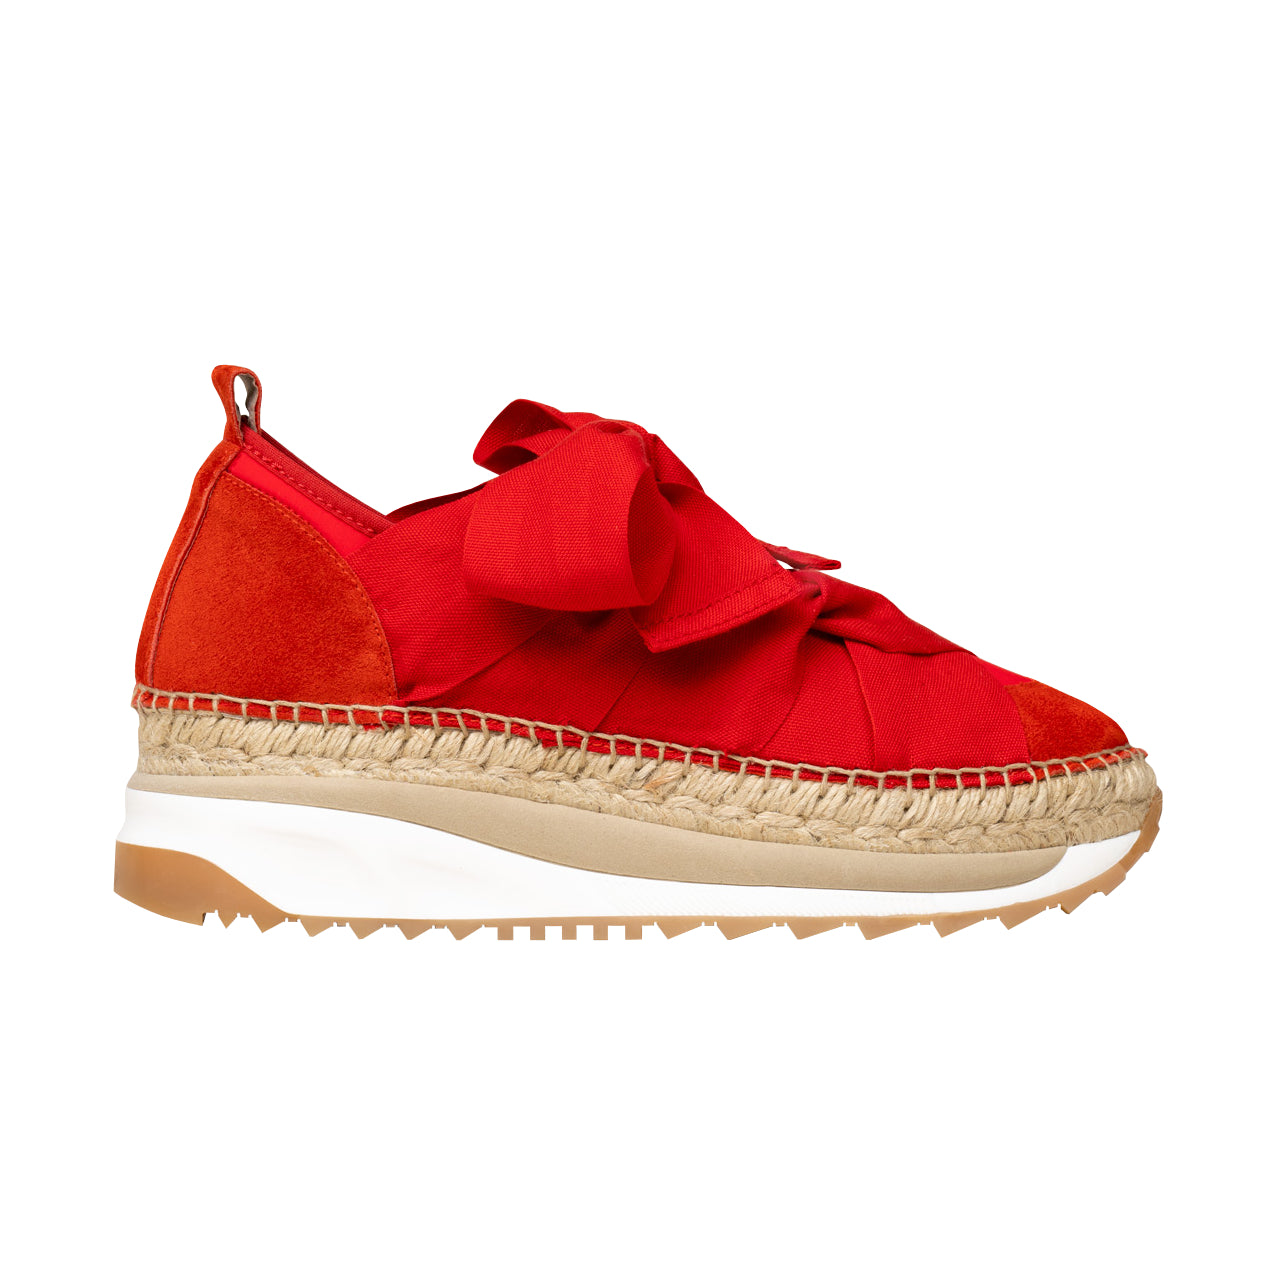 VENUS Red sneakers [ sizes 35, 36, 37, 38, 39, 40 and 41 available]